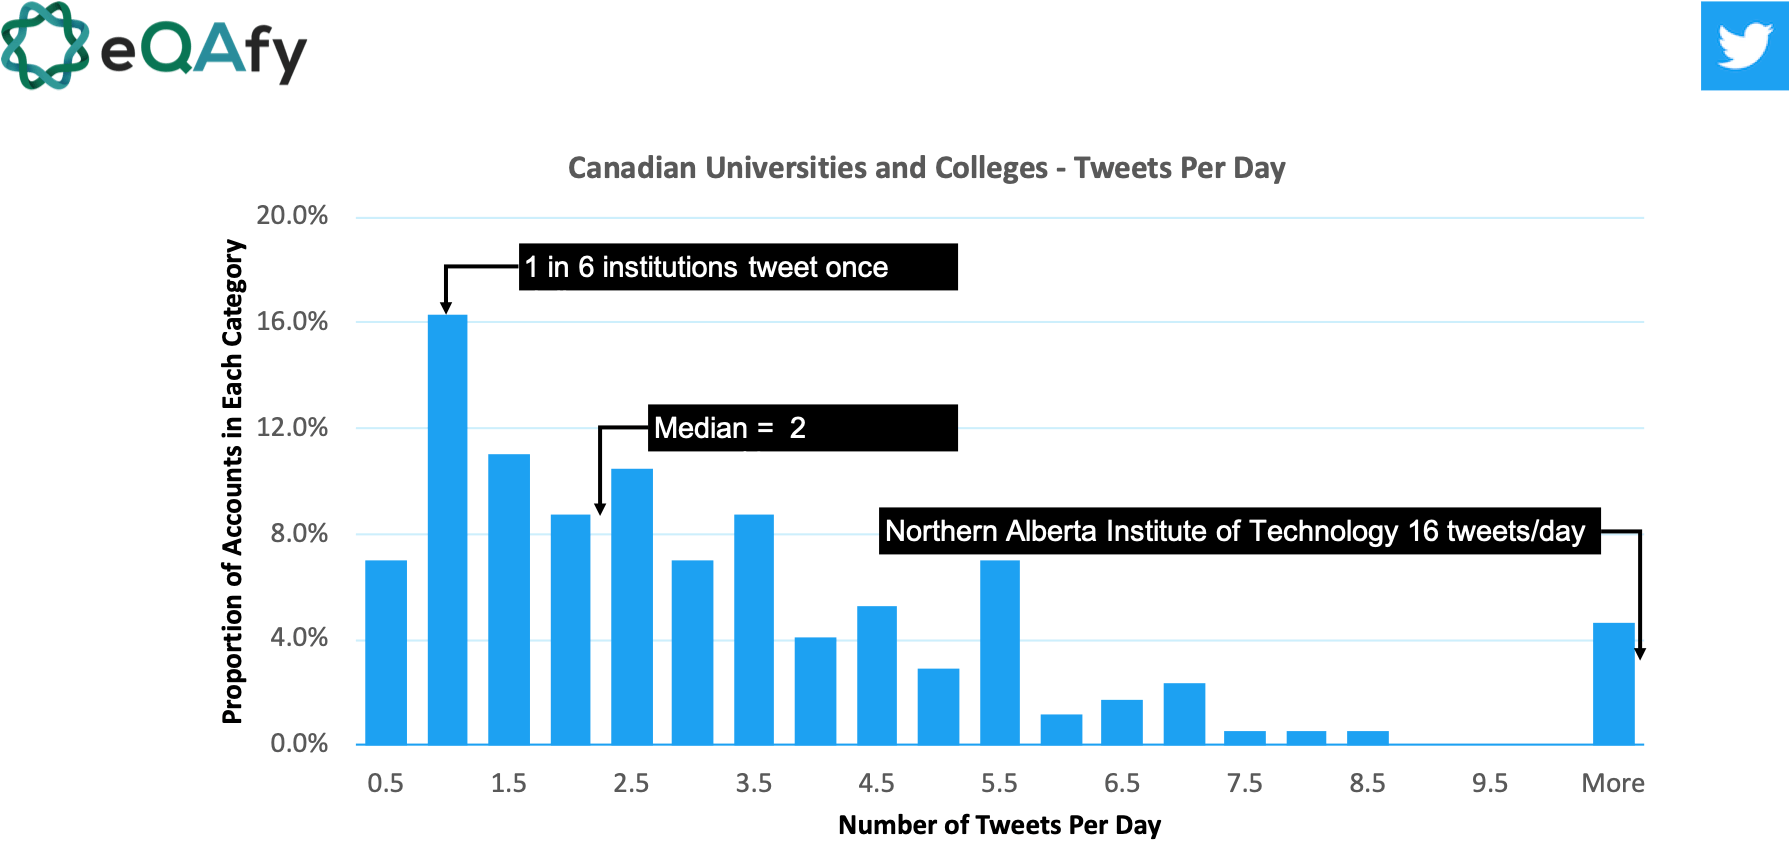 Distribution of the number of Tweets sent per day for higher education/post-secondary institutions in Canada